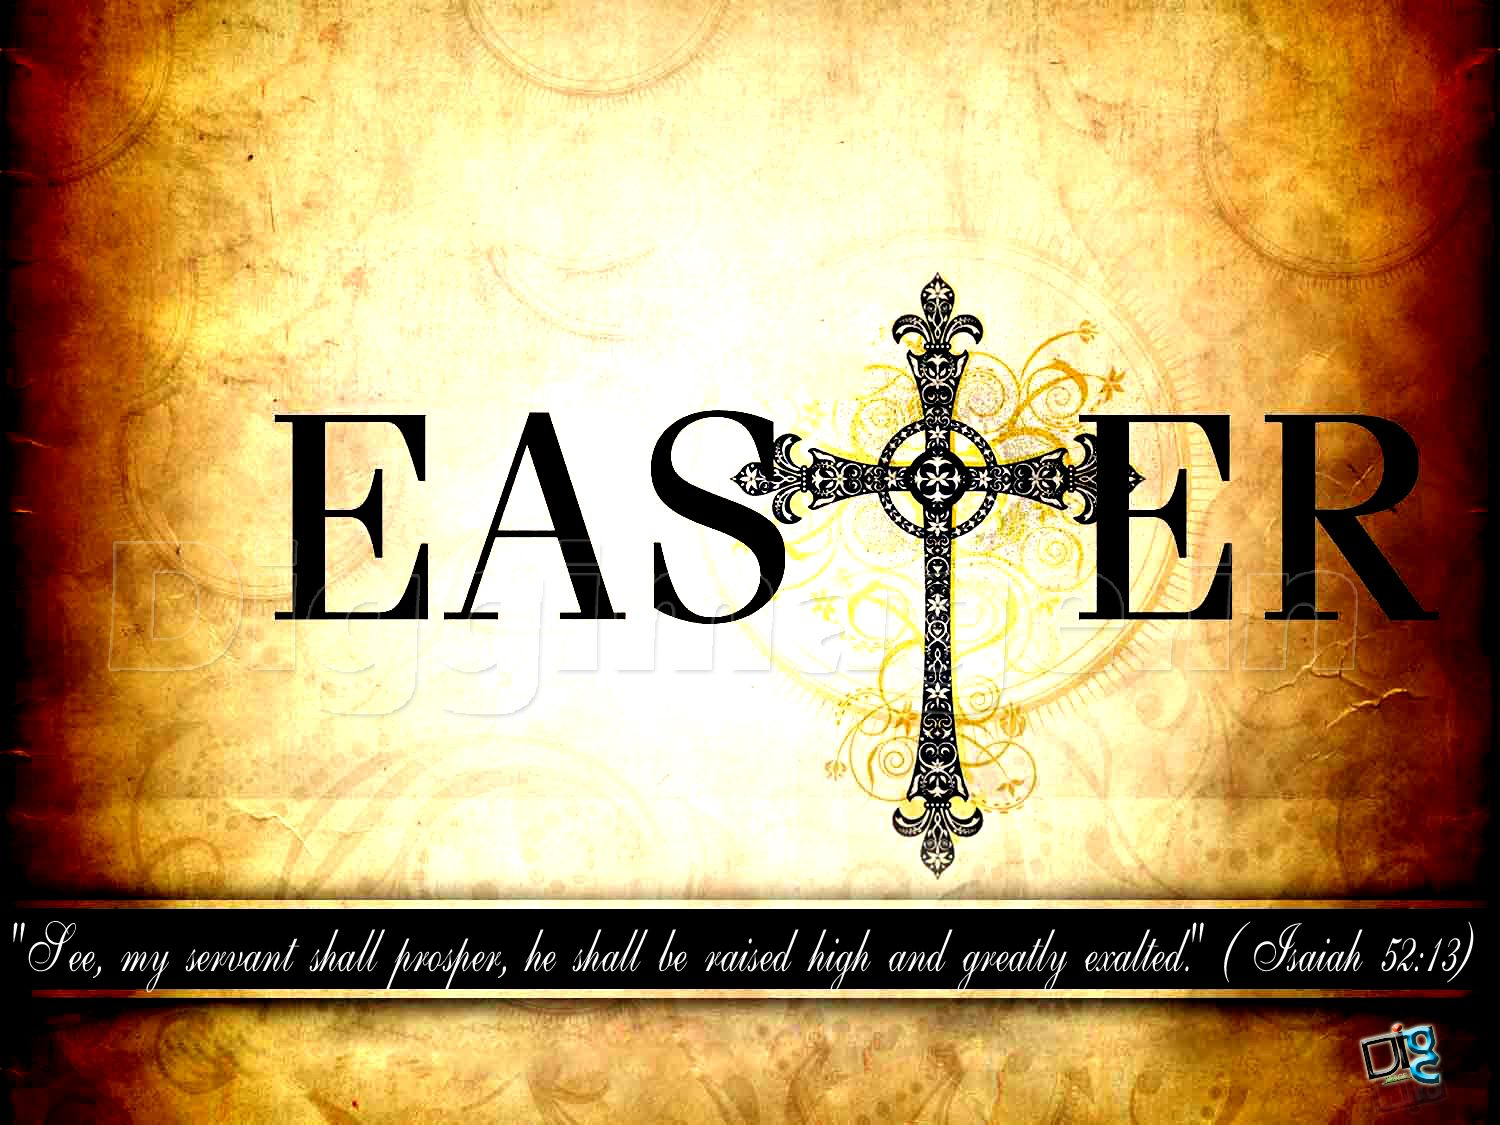 Pin on Eas†er✿†ime